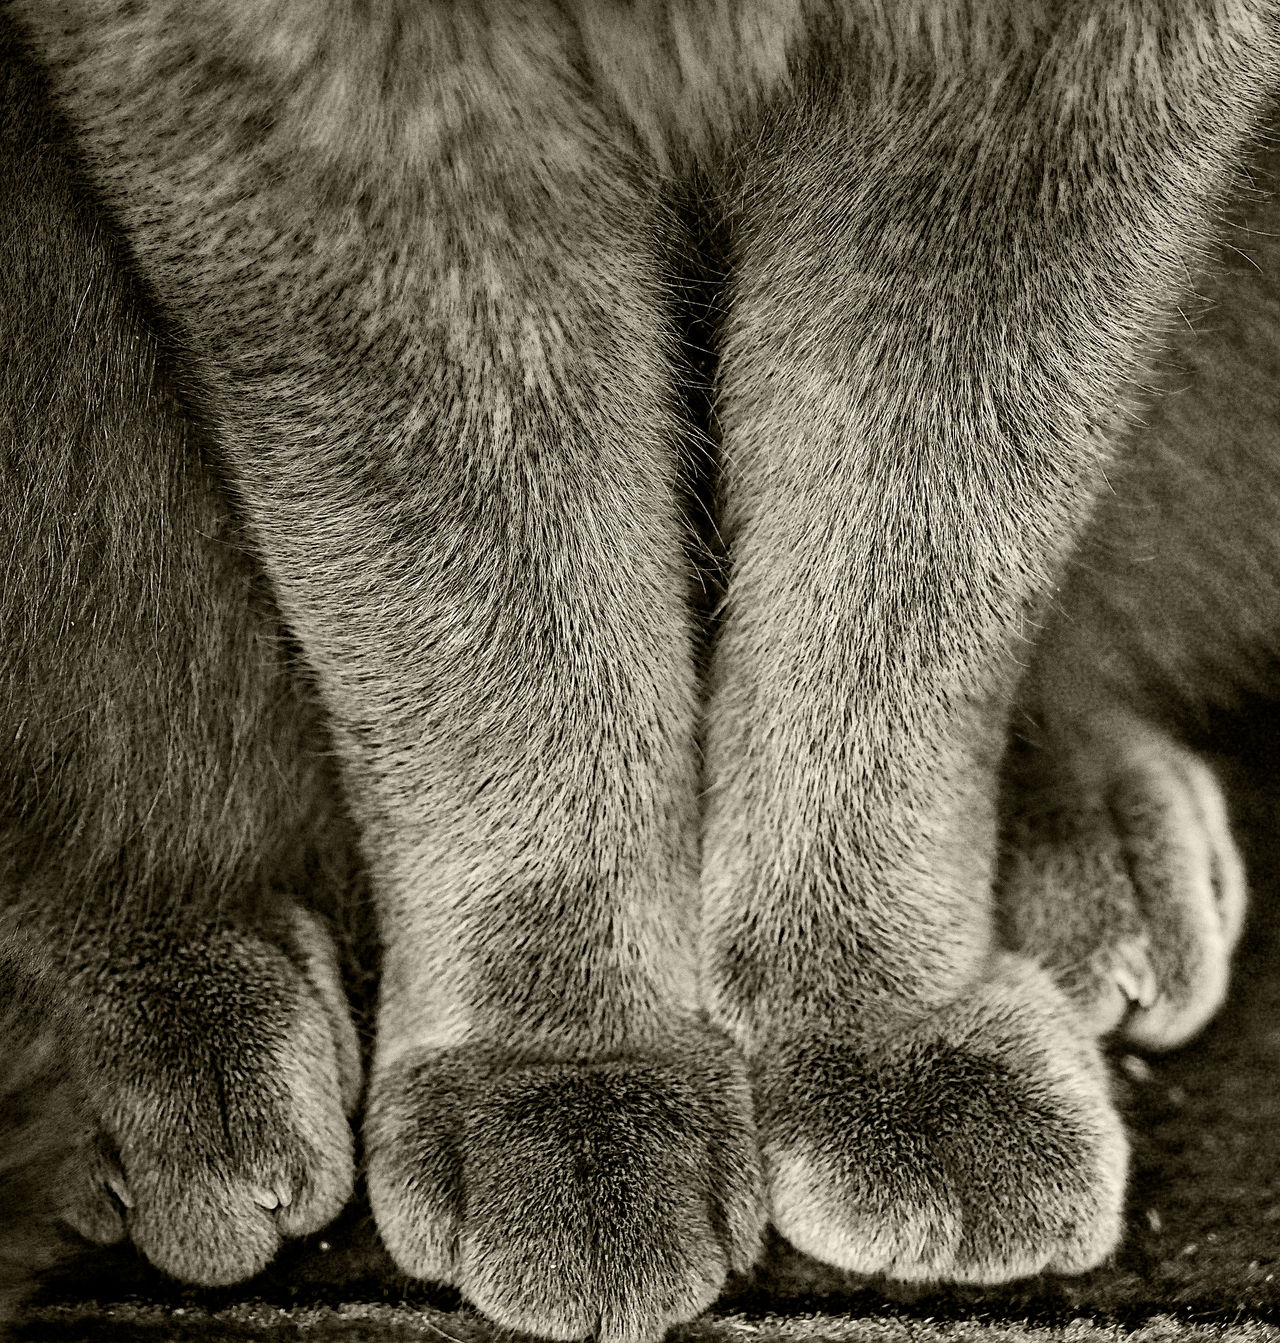 Animal Body Part Animal Leg Animal Themes Blackandwhite Cat Cats Cats Legs Cats Paws Close-up Day Domestic Animals Domestic Cat Feline Indoors  Mammal No People One Animal Paw Pets Toned Black And White